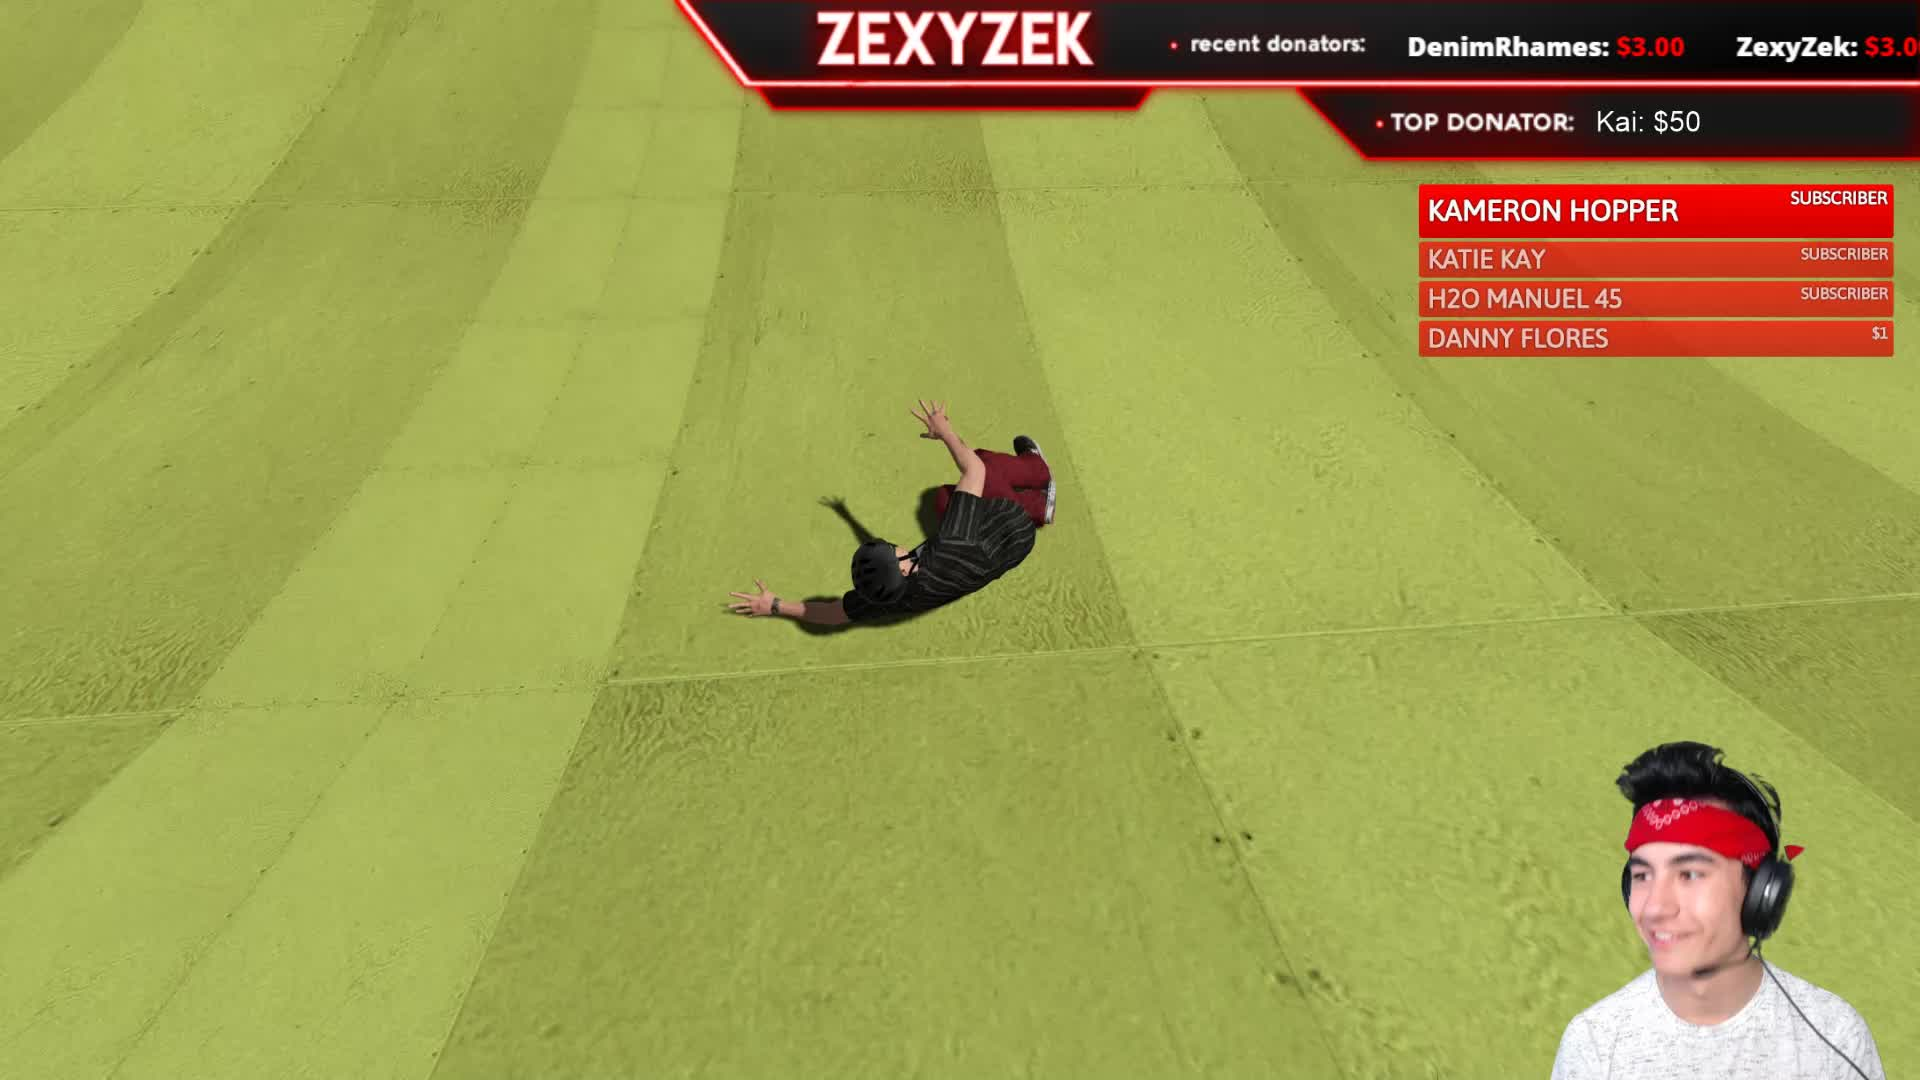 SKATE 3 CHILL Live Challenges with ZexyZek   Twitch 1920x1080